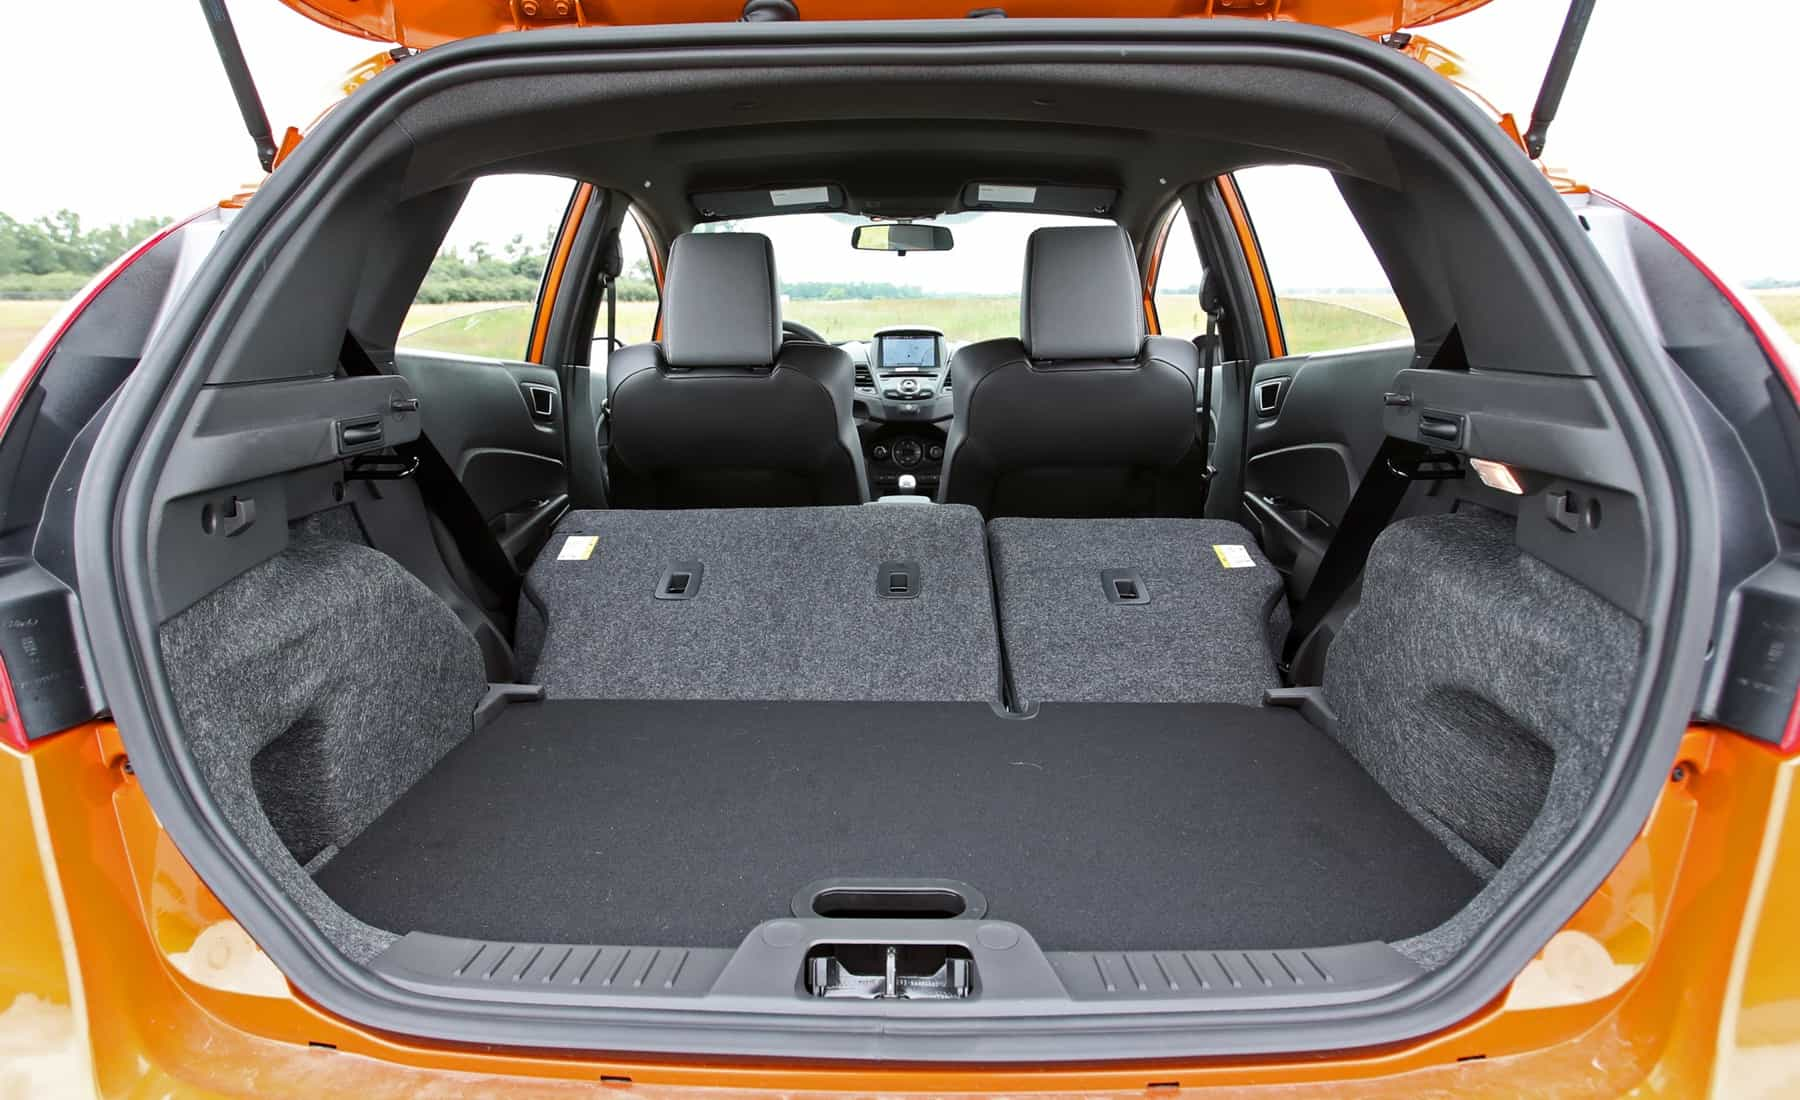 2017 Ford Fiesta ST Interior View Rear Corgo Seats Folded (Photo 31 of 47)